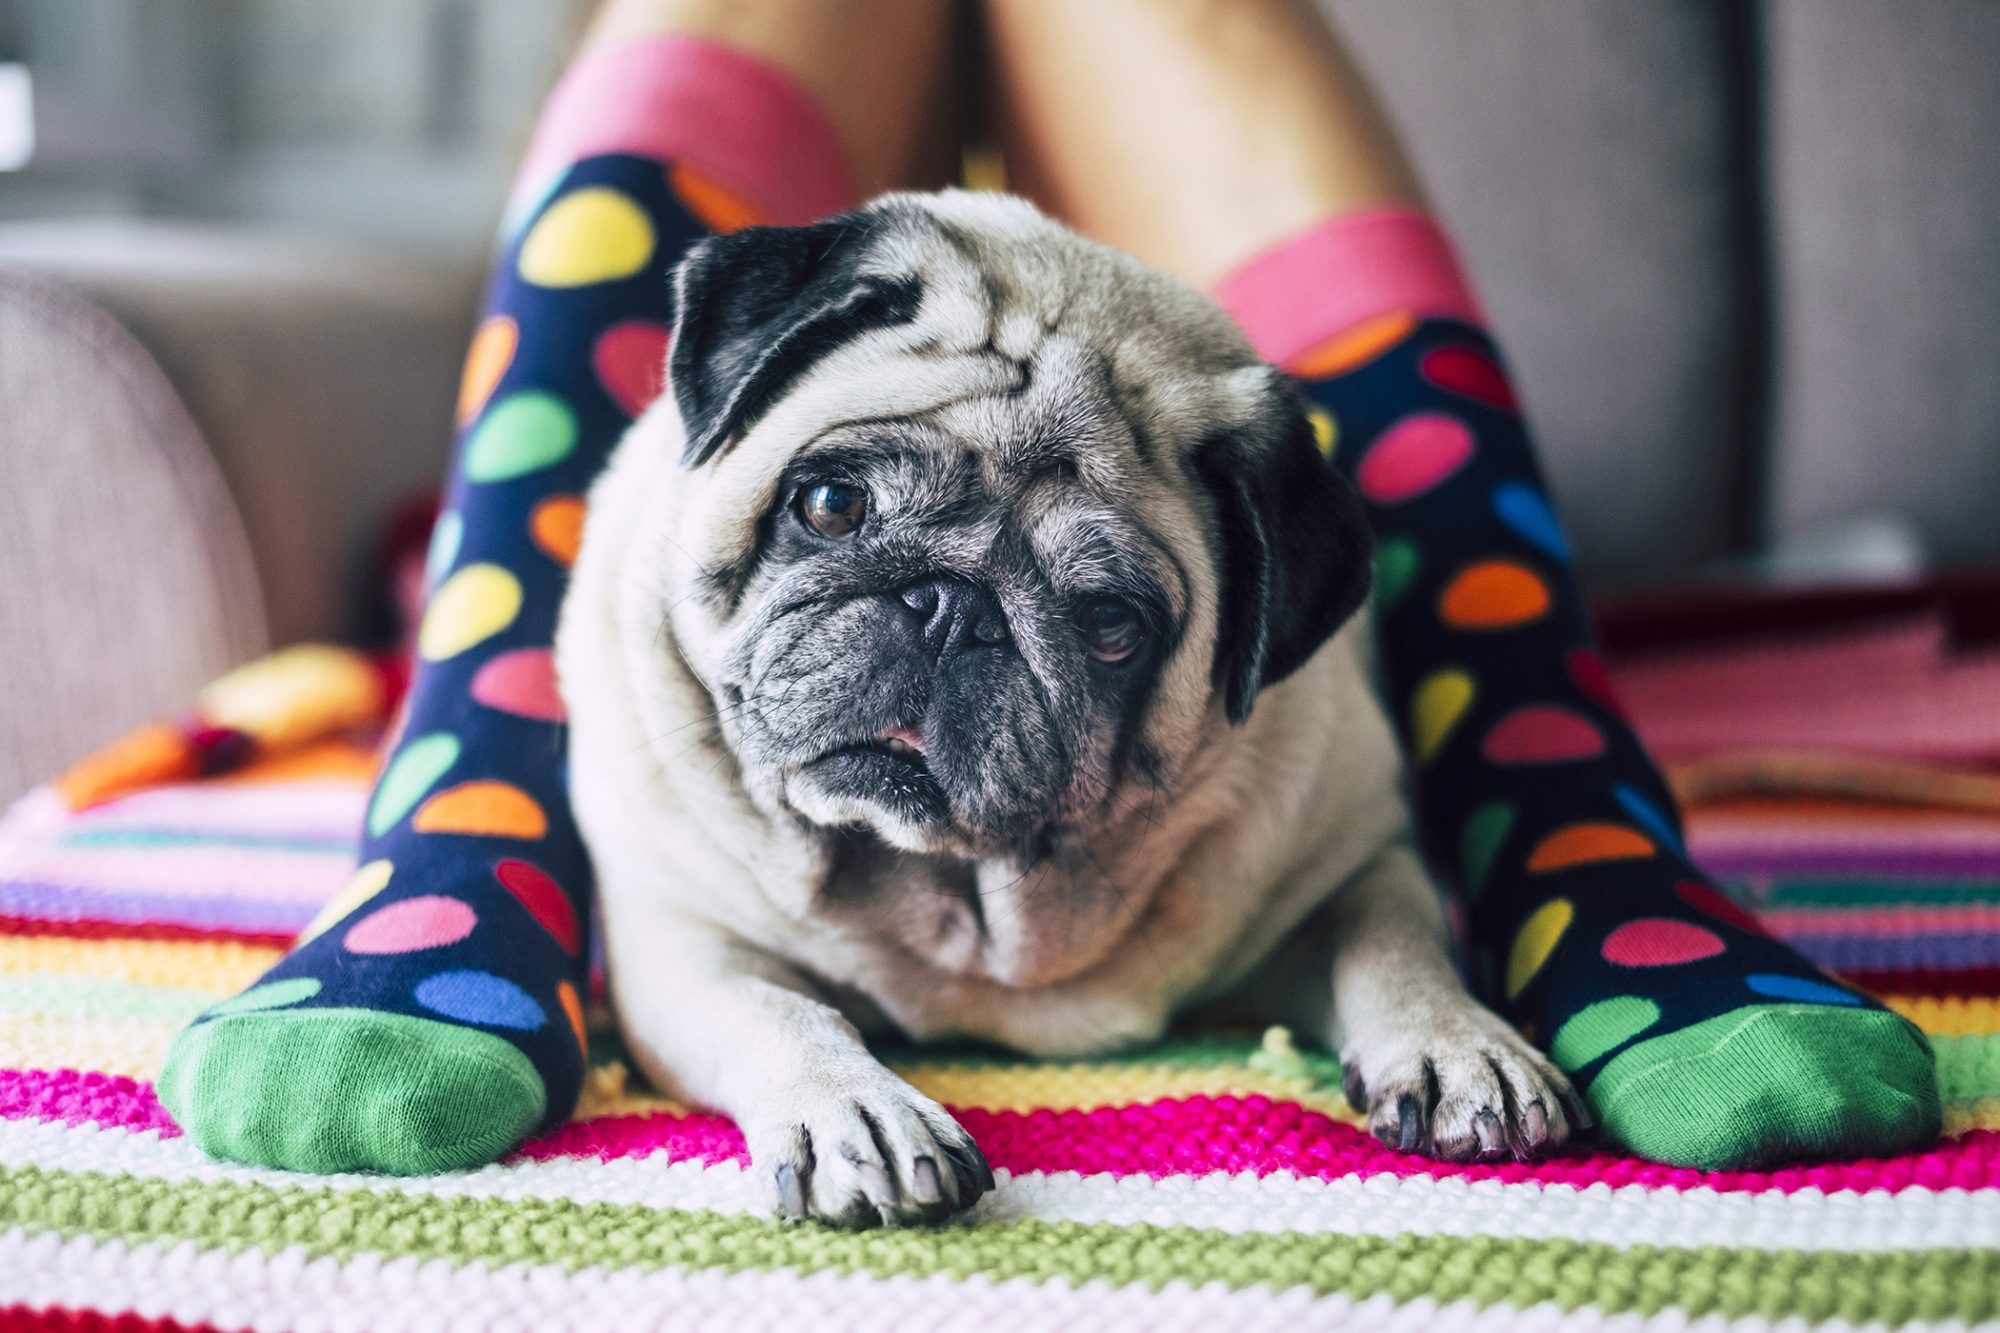 pug with eye discharge sitting in between legs of a child wearing polka dot socks